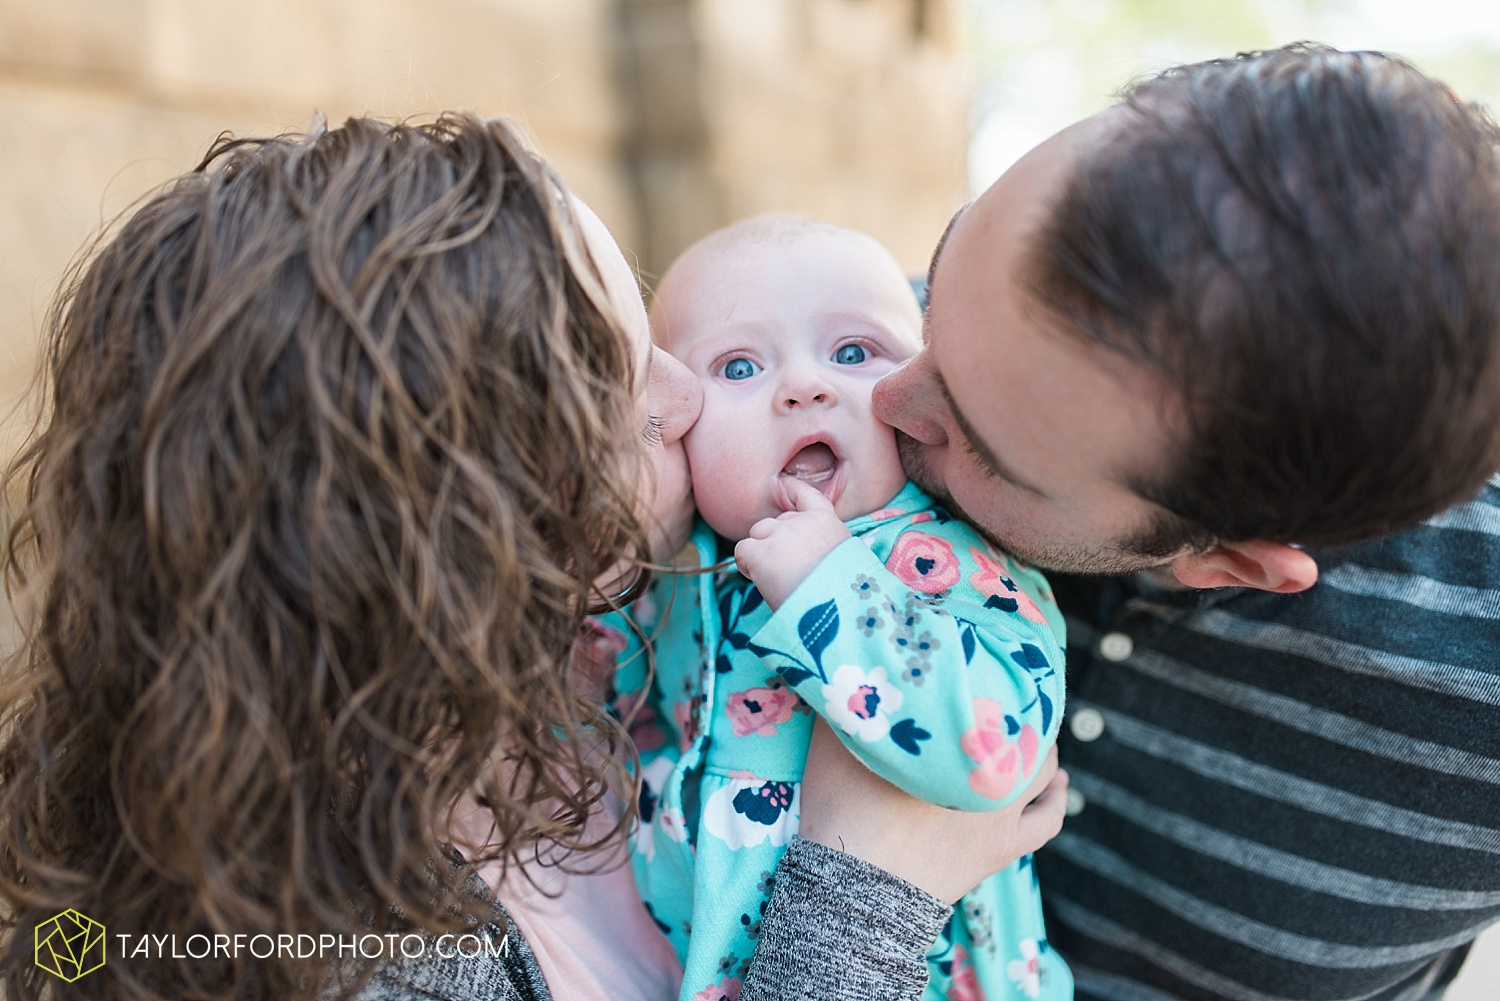 fort-wayne-indiana-family-photographer-taylor-ford-photography-van-wert-lima-ohio-soaff-park_1660.jpg